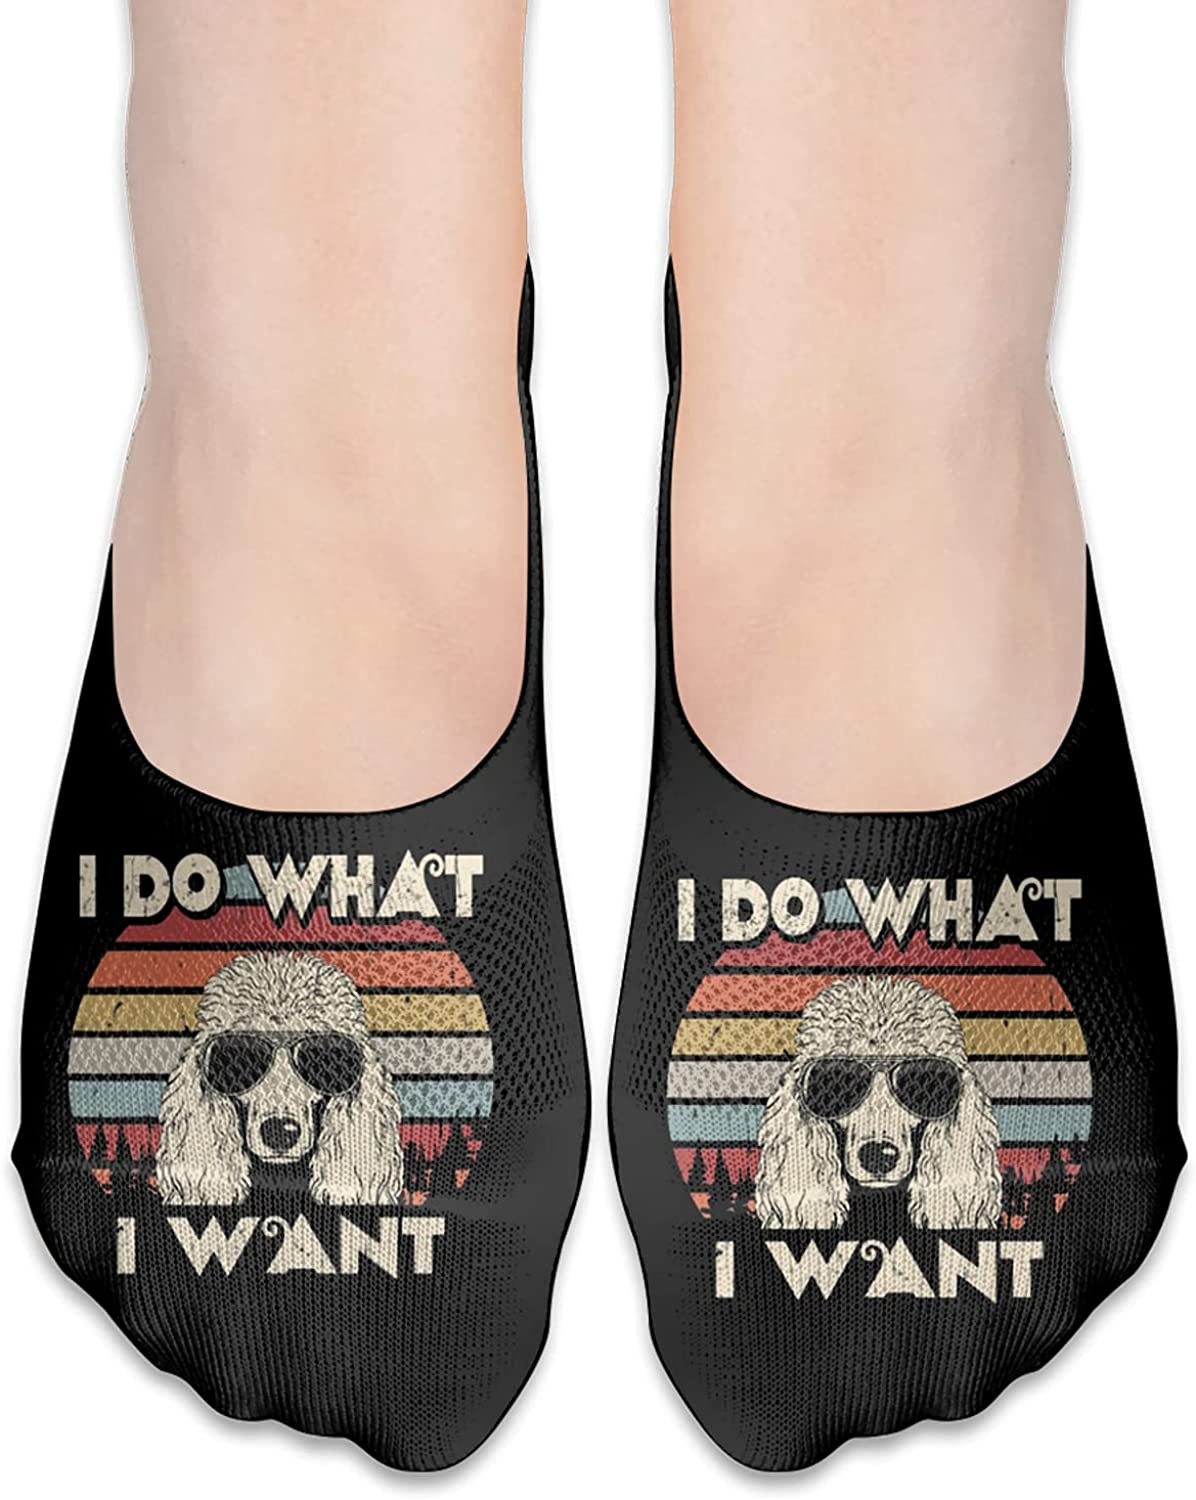 I Do What I Want Funny Standard Poodle Unisex Adult Light Casual Liner Socks Non Slip No Show Ankle Socks Low Cut Invisible Socks